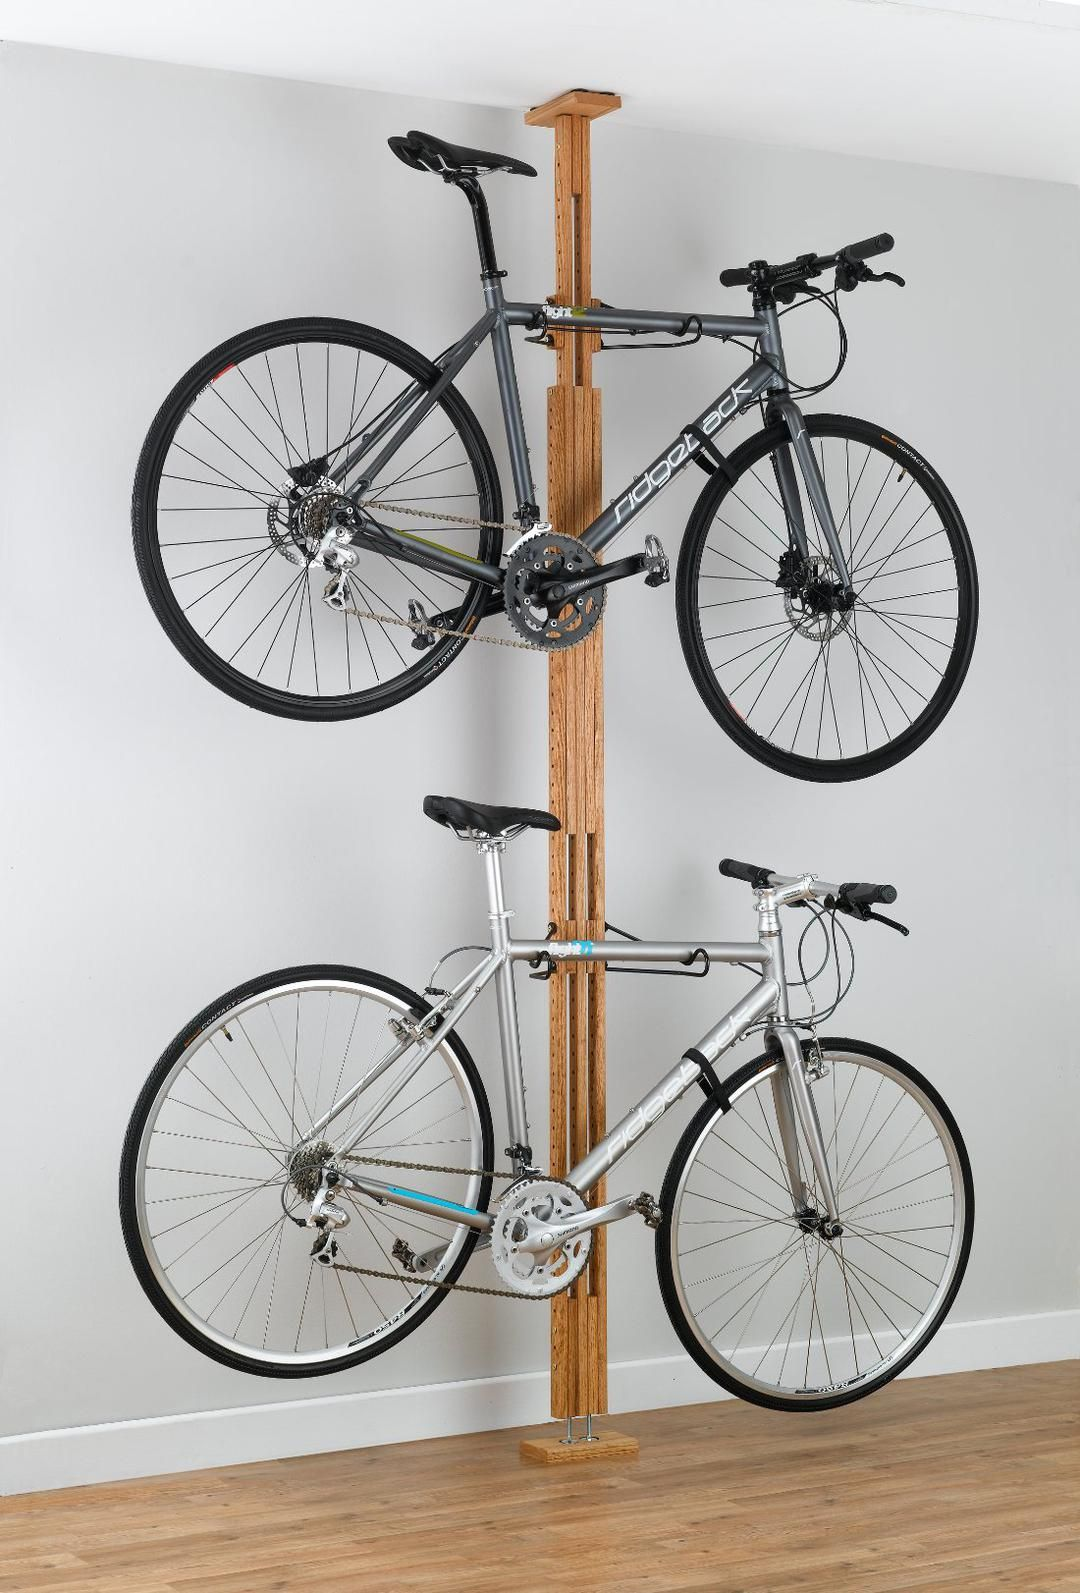 Bike Storage Racks Bike Lifts Family Bicycle Racks Canoe